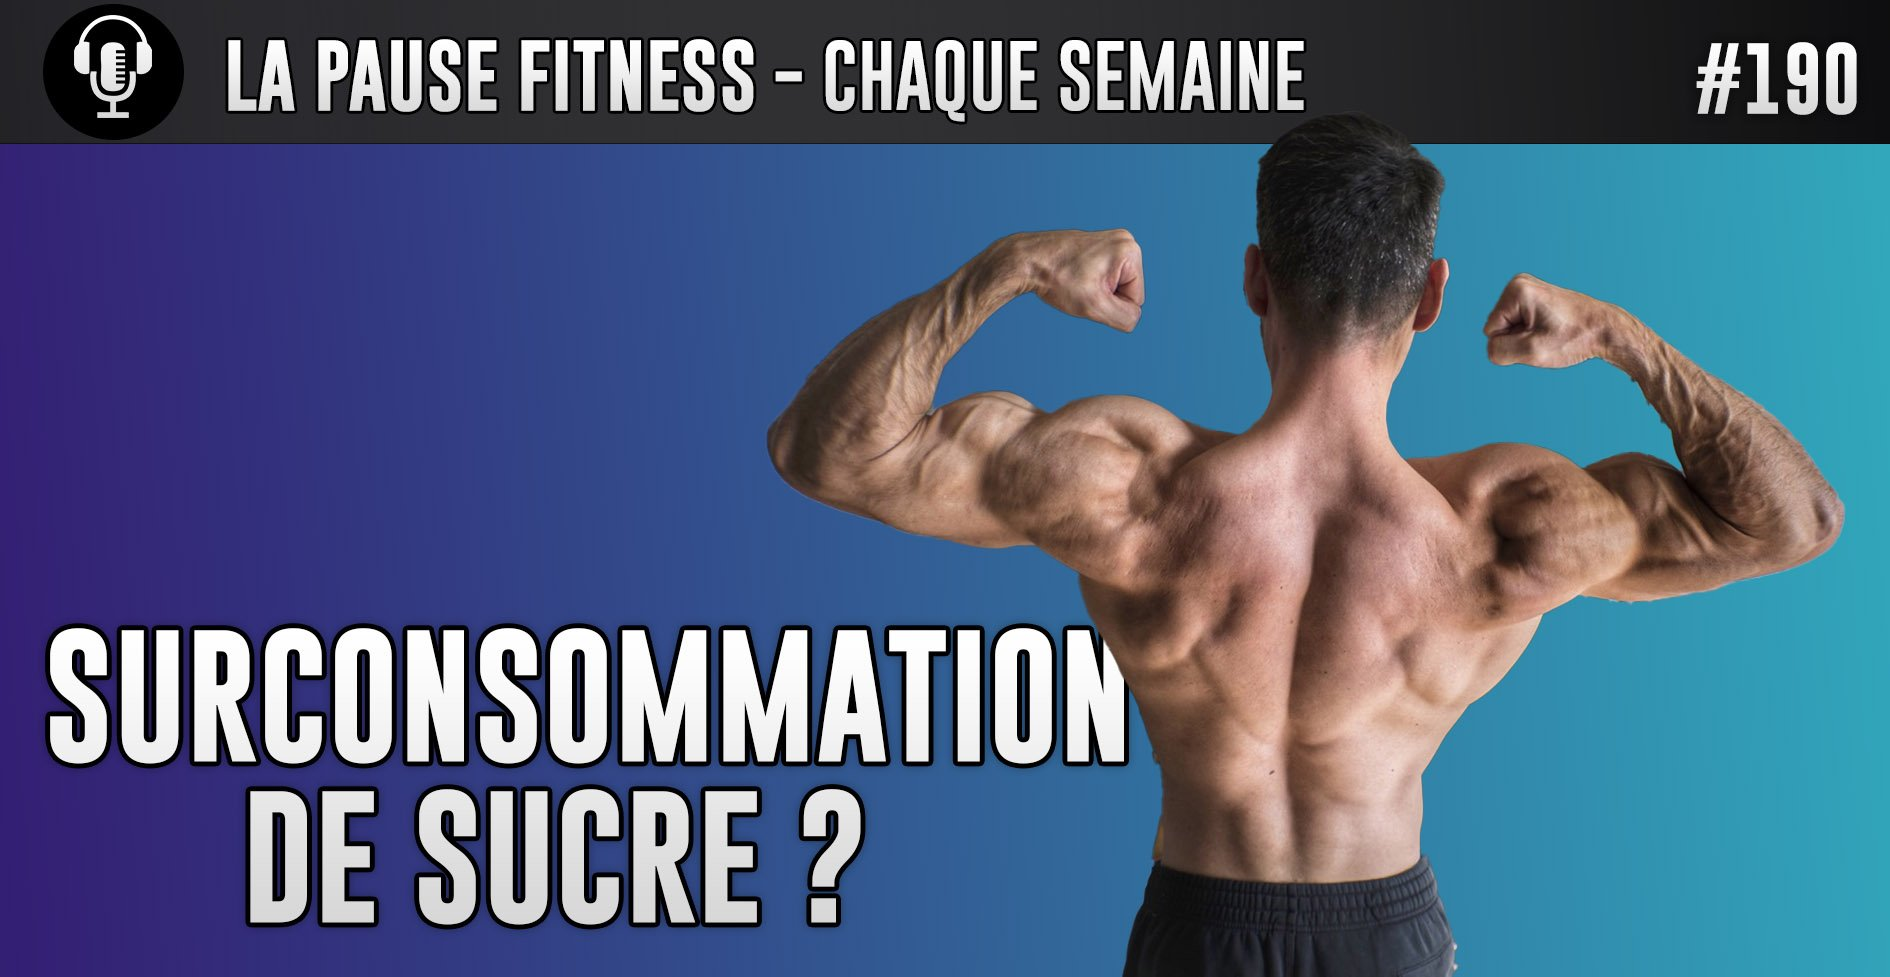 La pause fitness,podcast musculation,podcast entrainement,podcast nutrition,podcast bodybuilding,podcast fitnessmith,podcast développement personnel,méditation,optimisation personnelle,bodybuilding,émission,podcast fitness,émission fitness,émission musculation